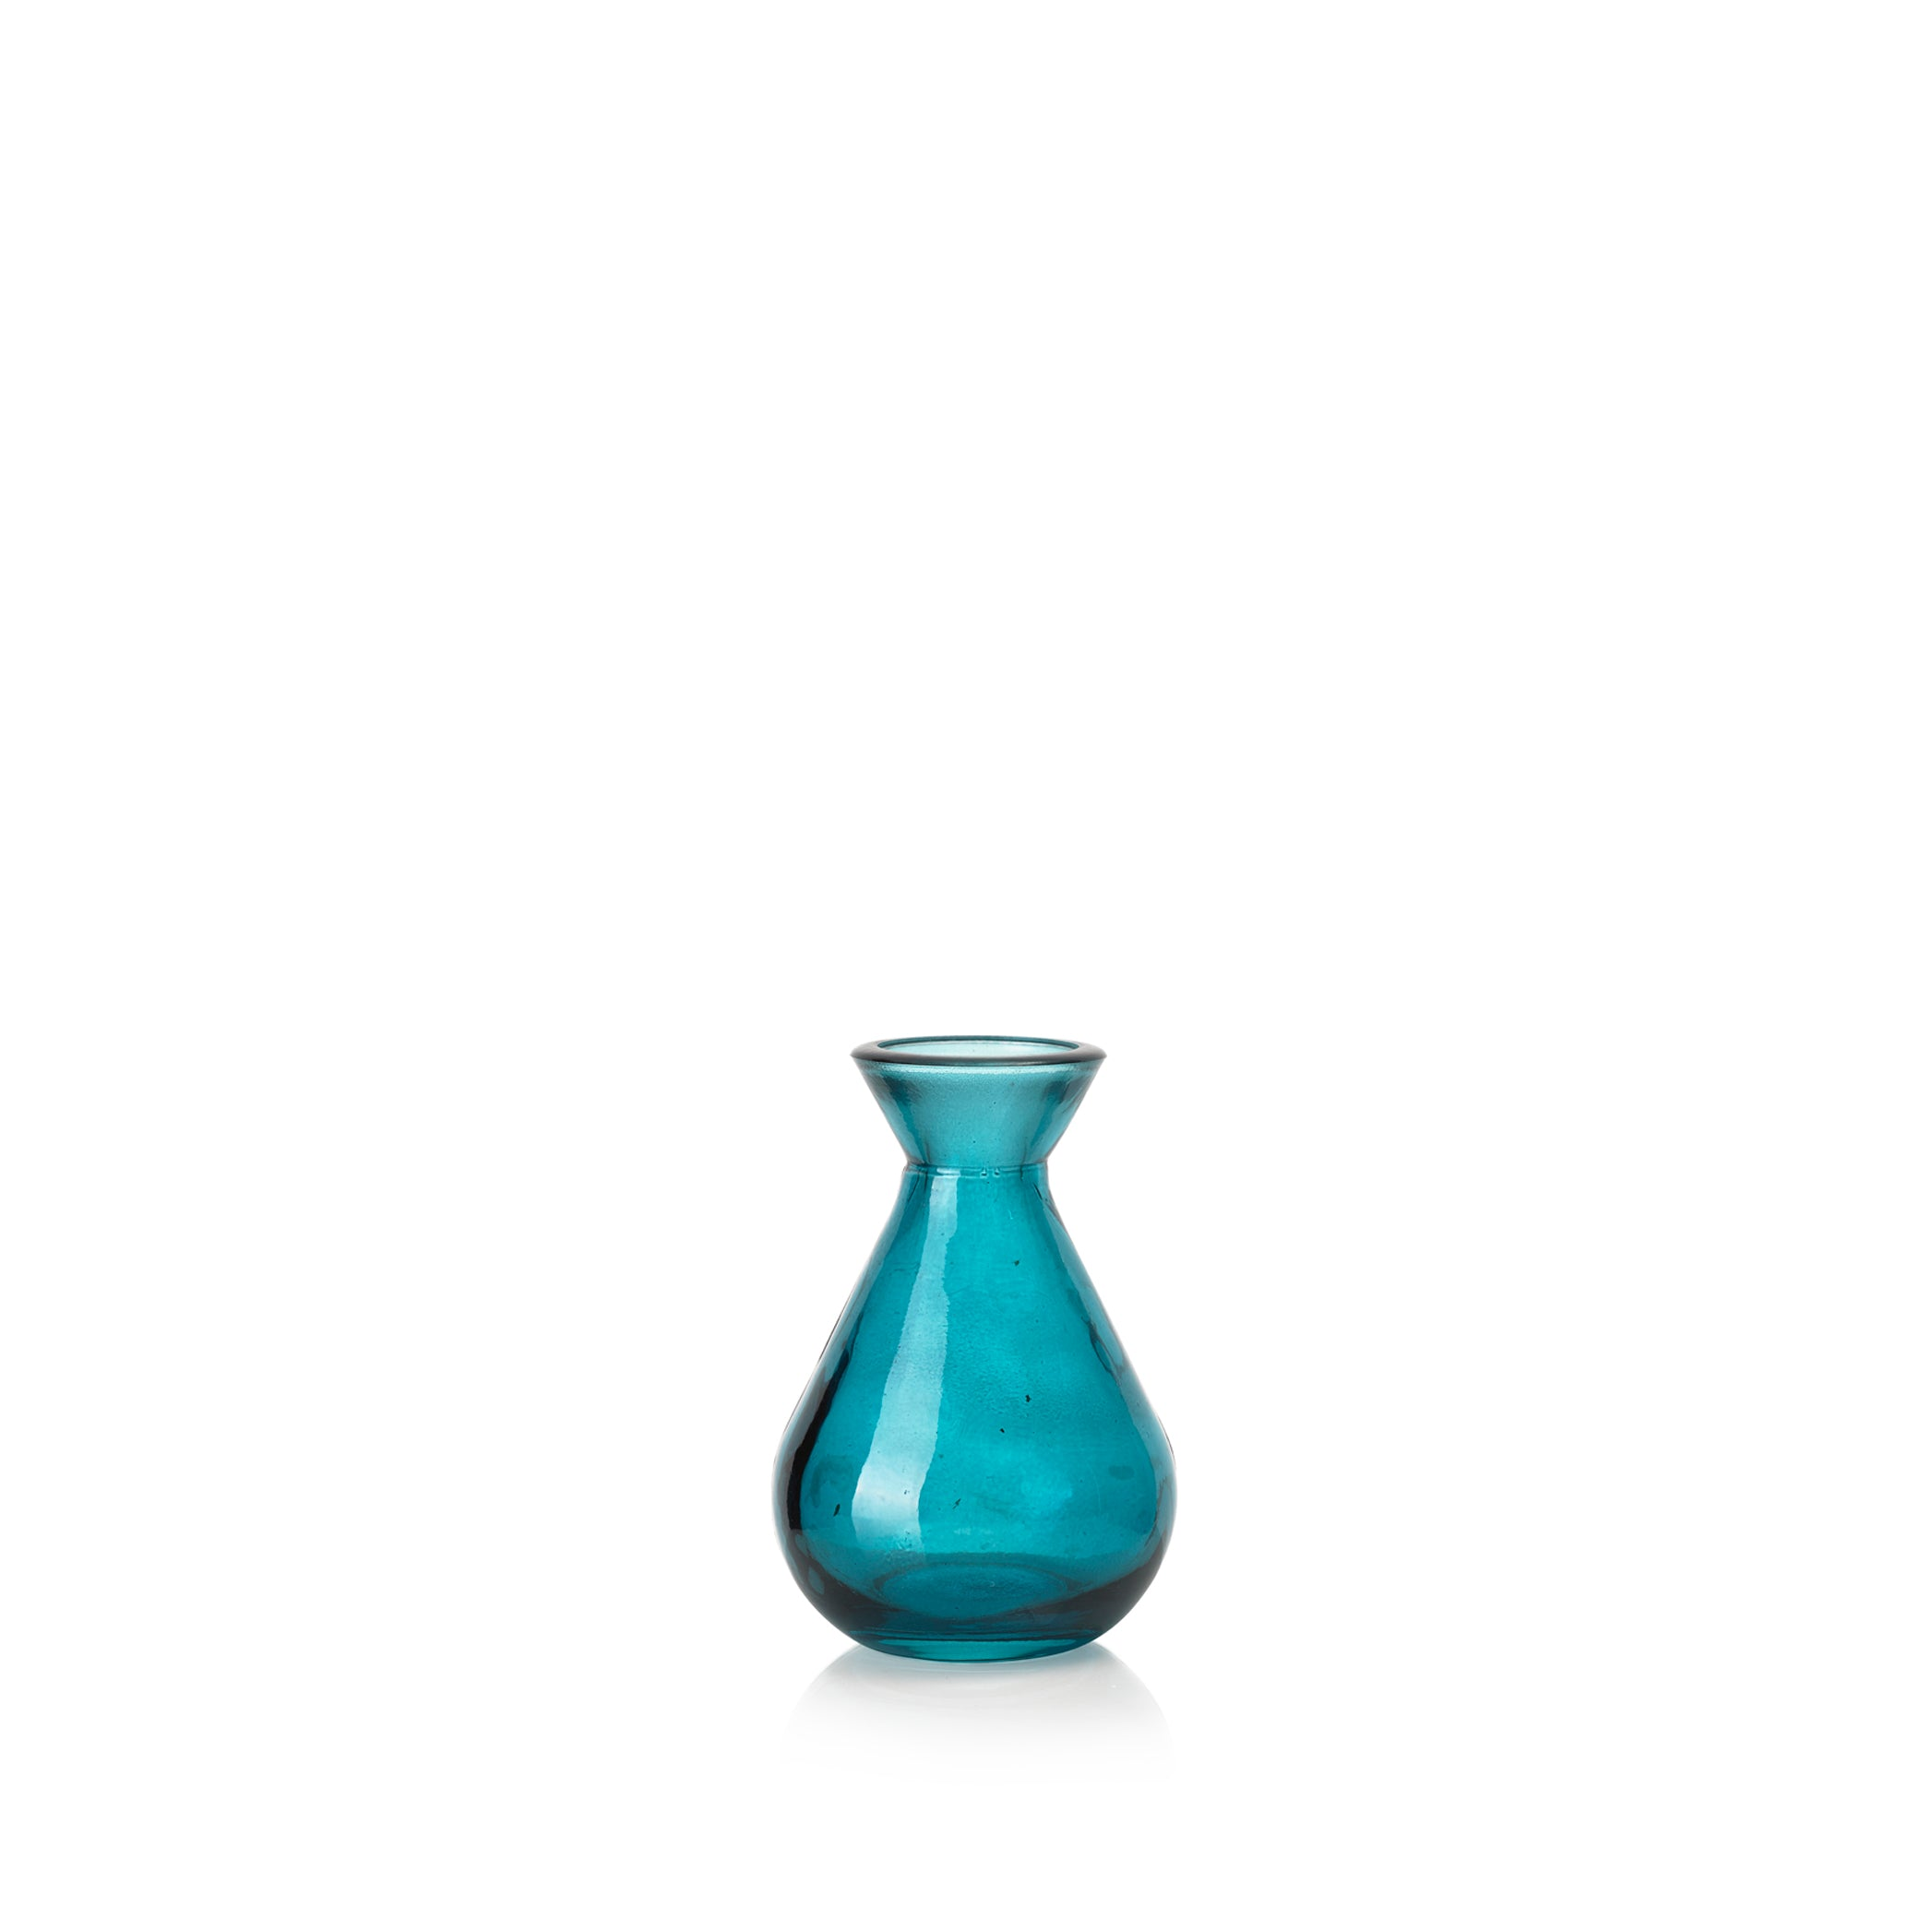 Recycled Glass Bud Vase in Turquoise